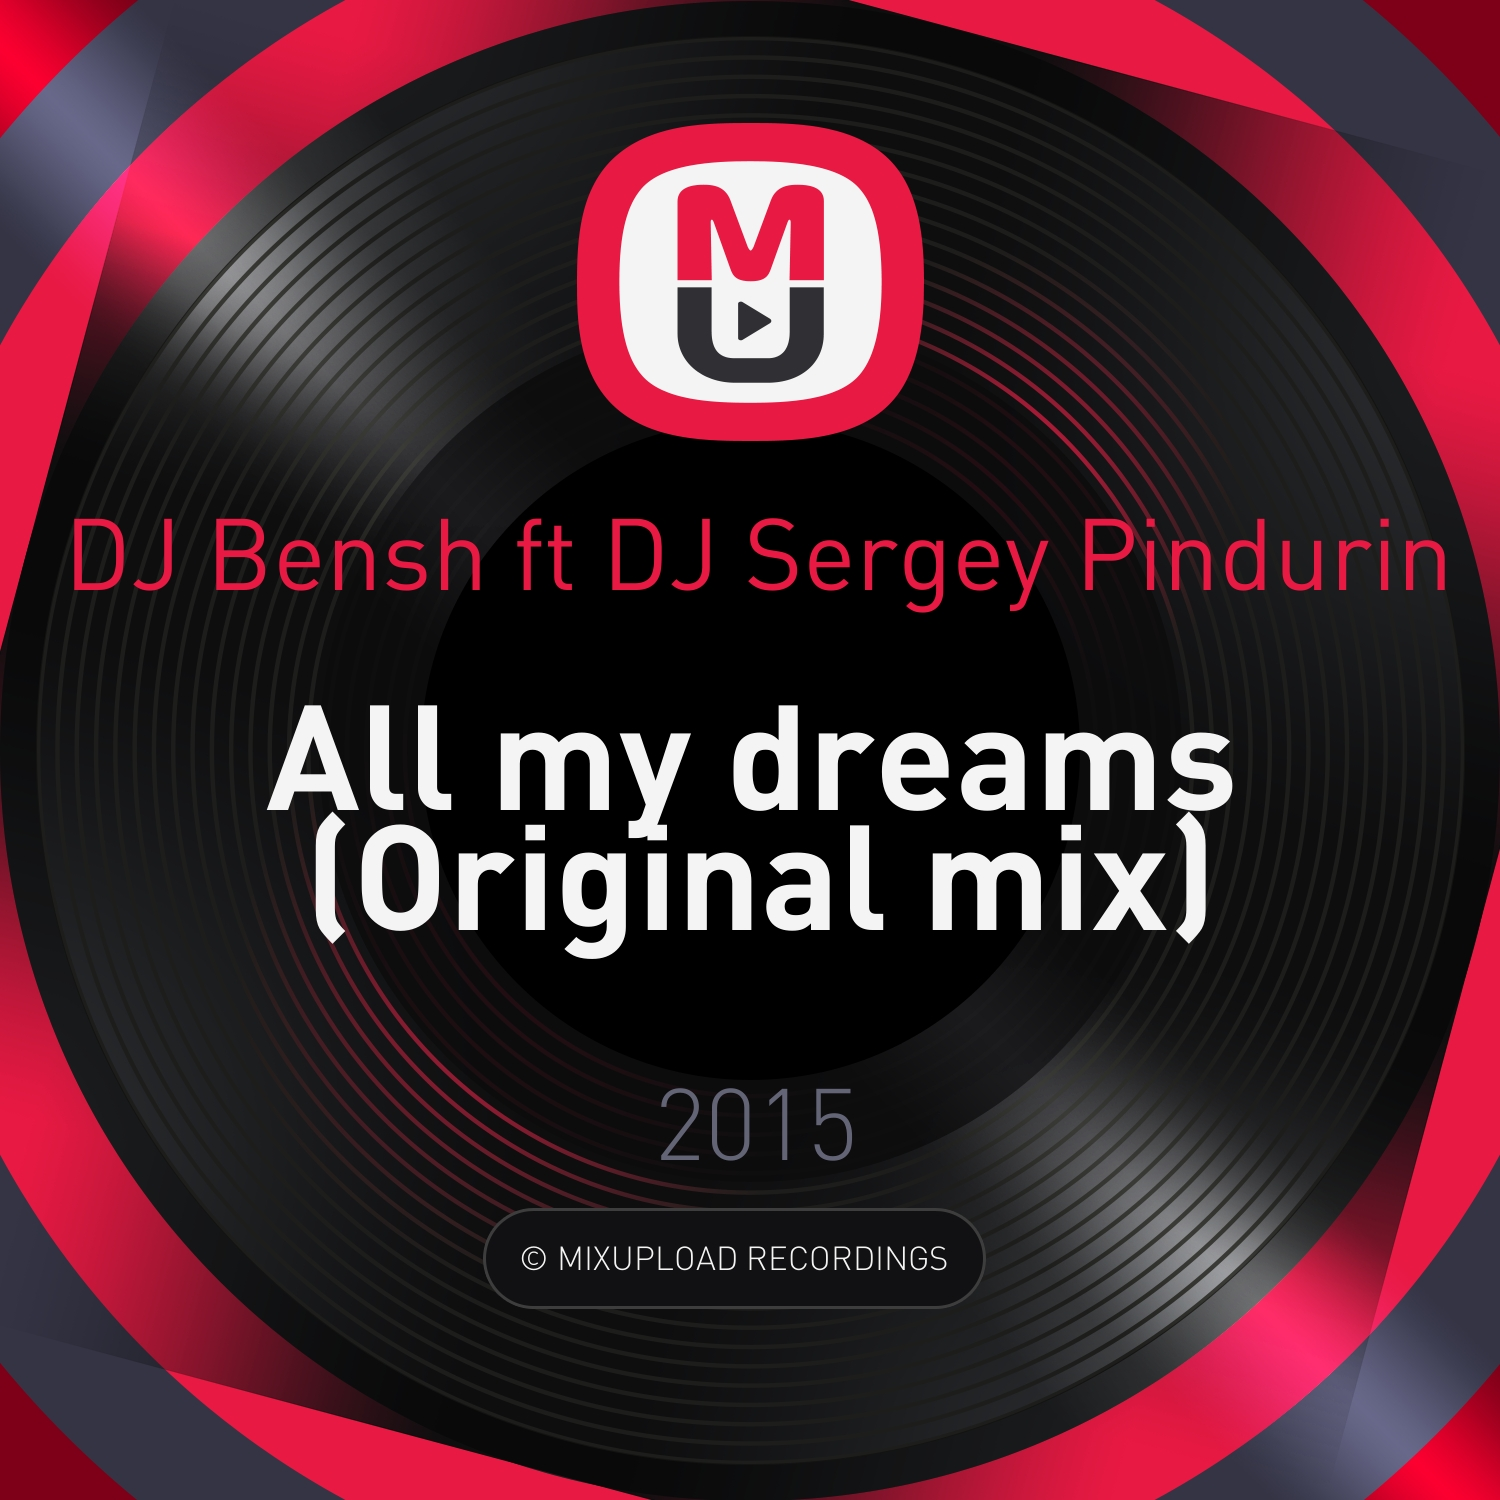 DJ Bensh ft DJ Sergey Pindurin - All my dreams (Original mix)